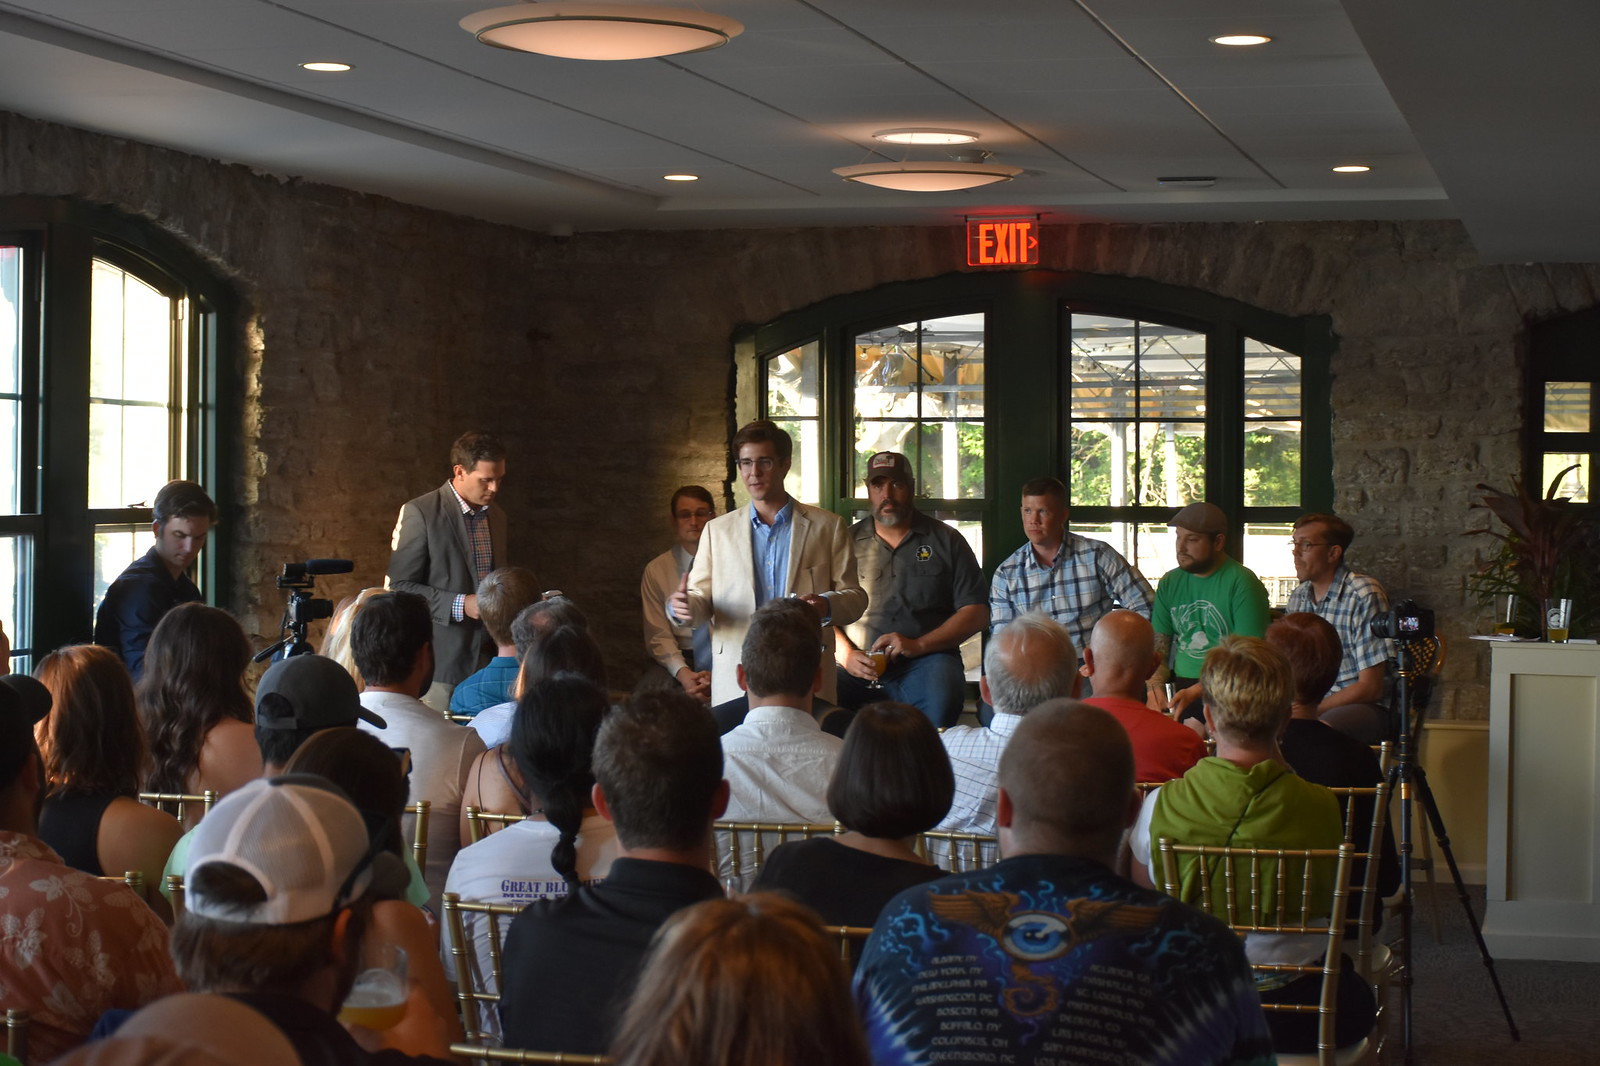 Counterpoint Launch Party and Craft Beer Economics Panel